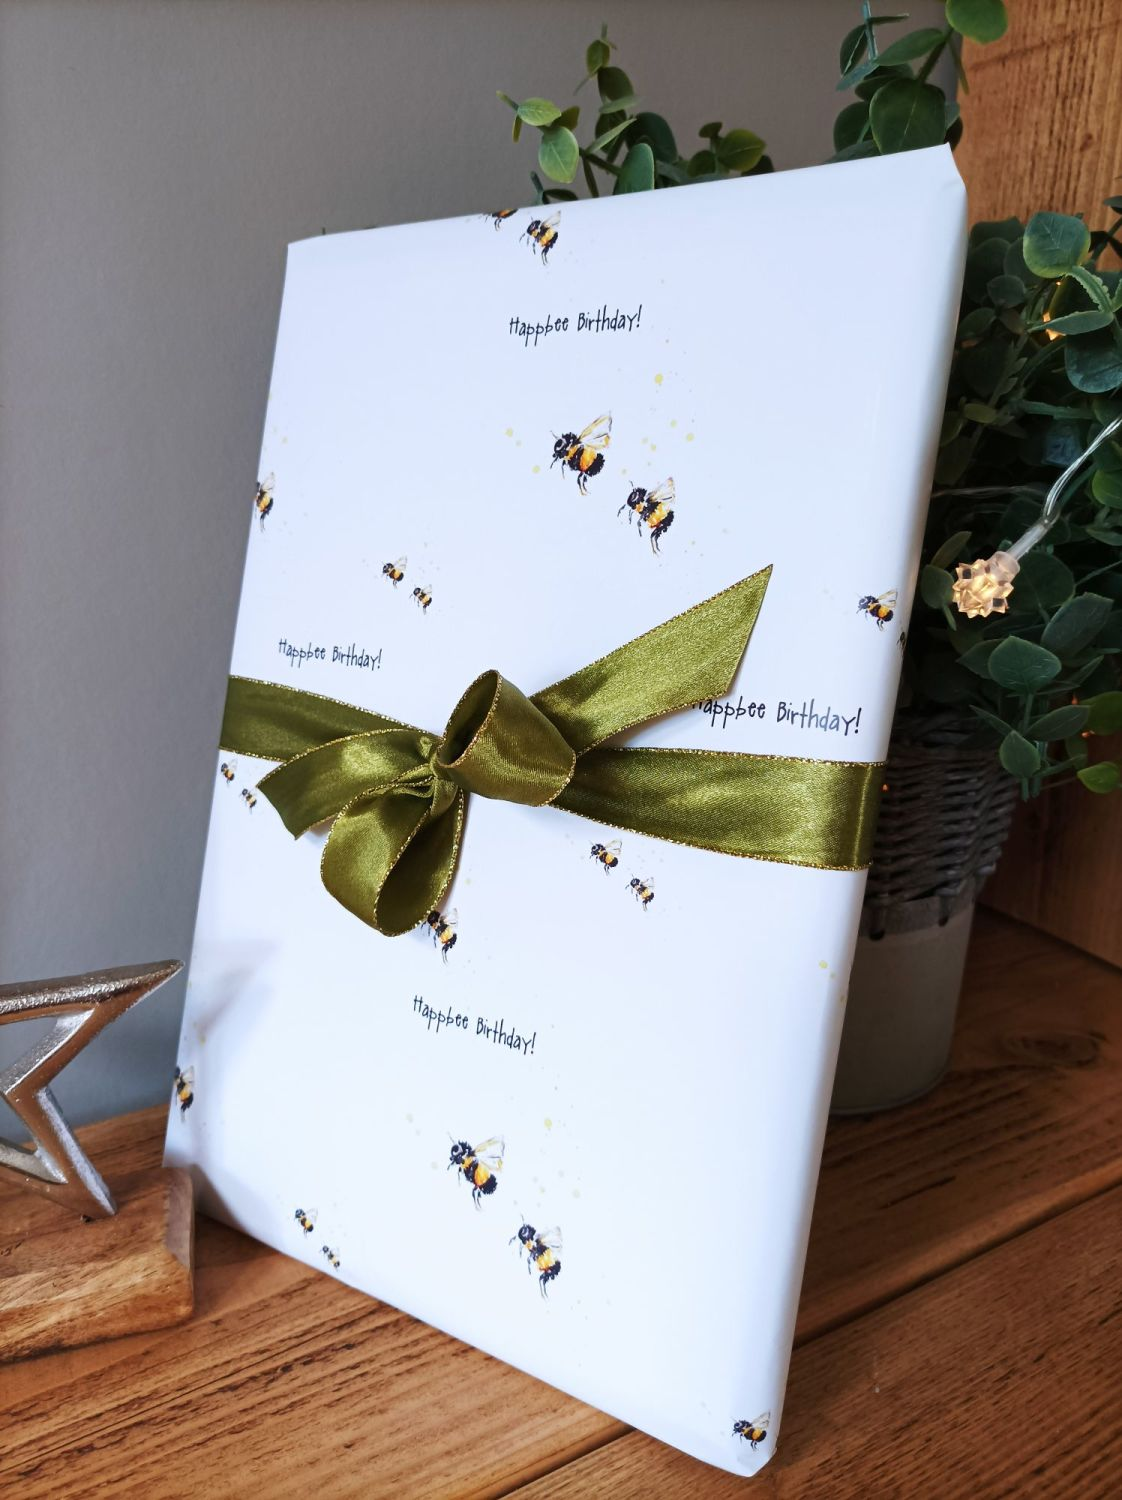 Happbee Birthday! - Wrapping paper